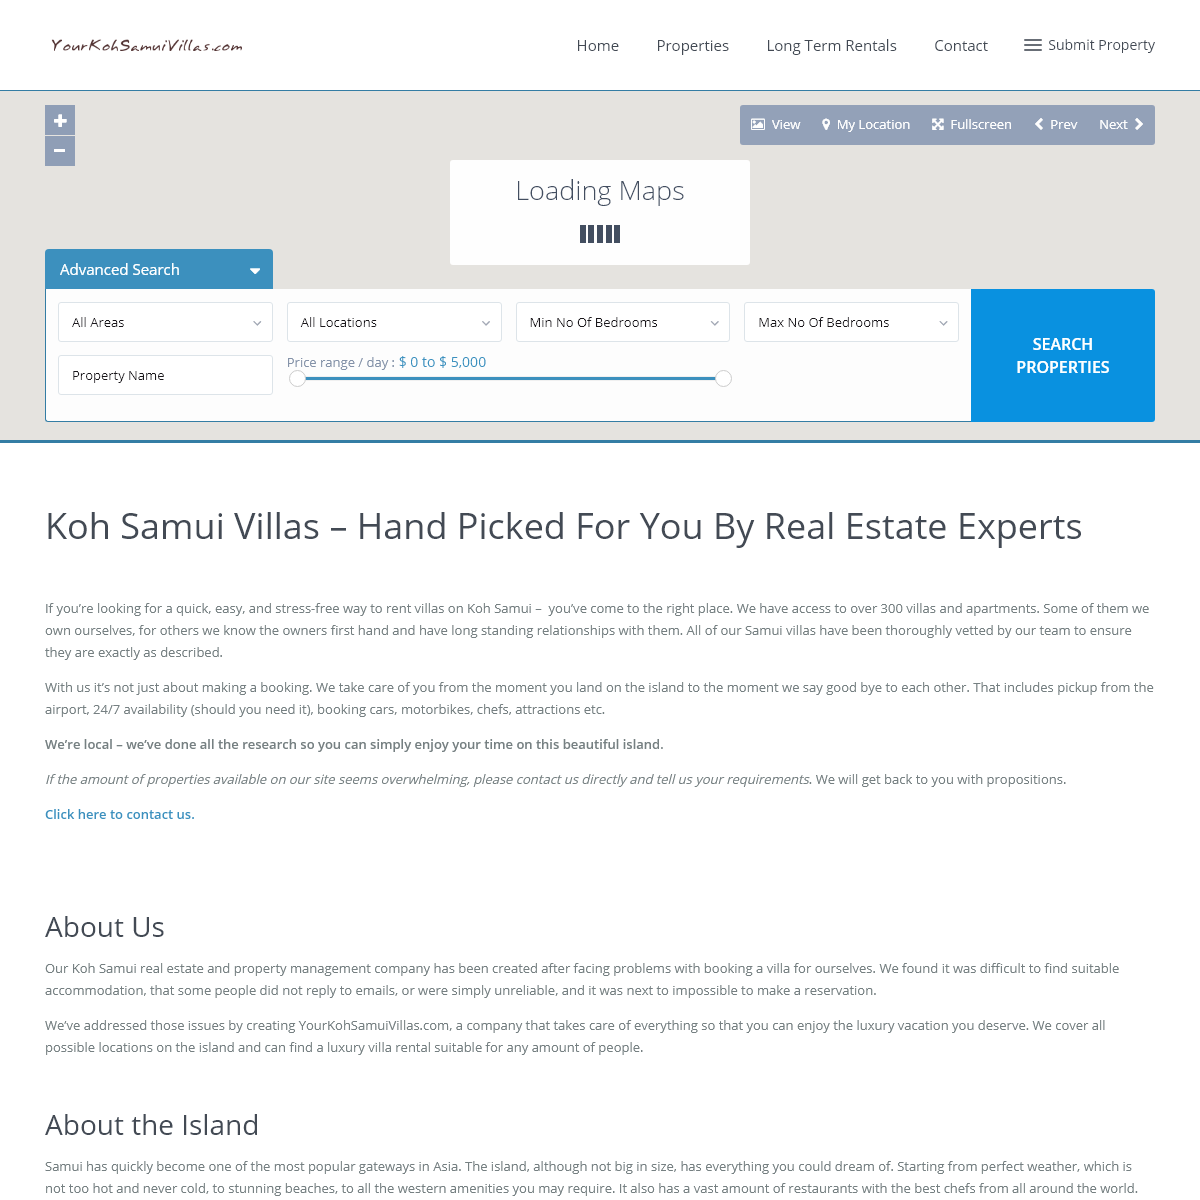 Koh Samui Villas - Hand Picked For You By Real Estate Experts